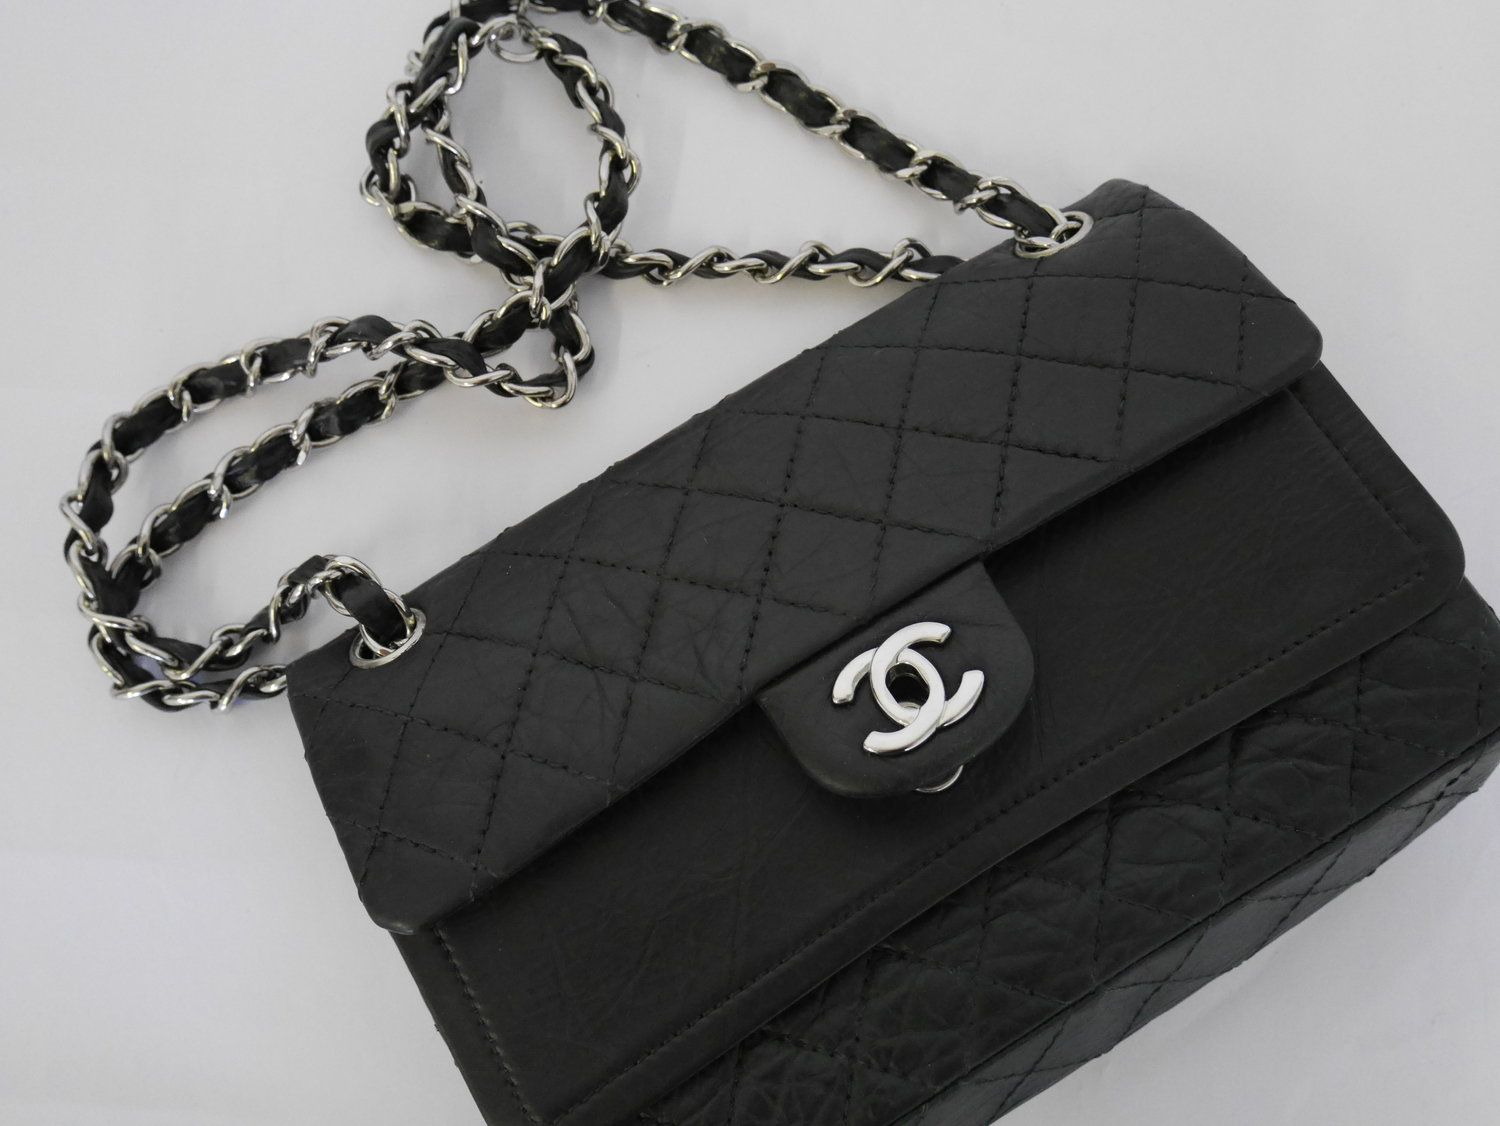 Re-colouring a Chanel